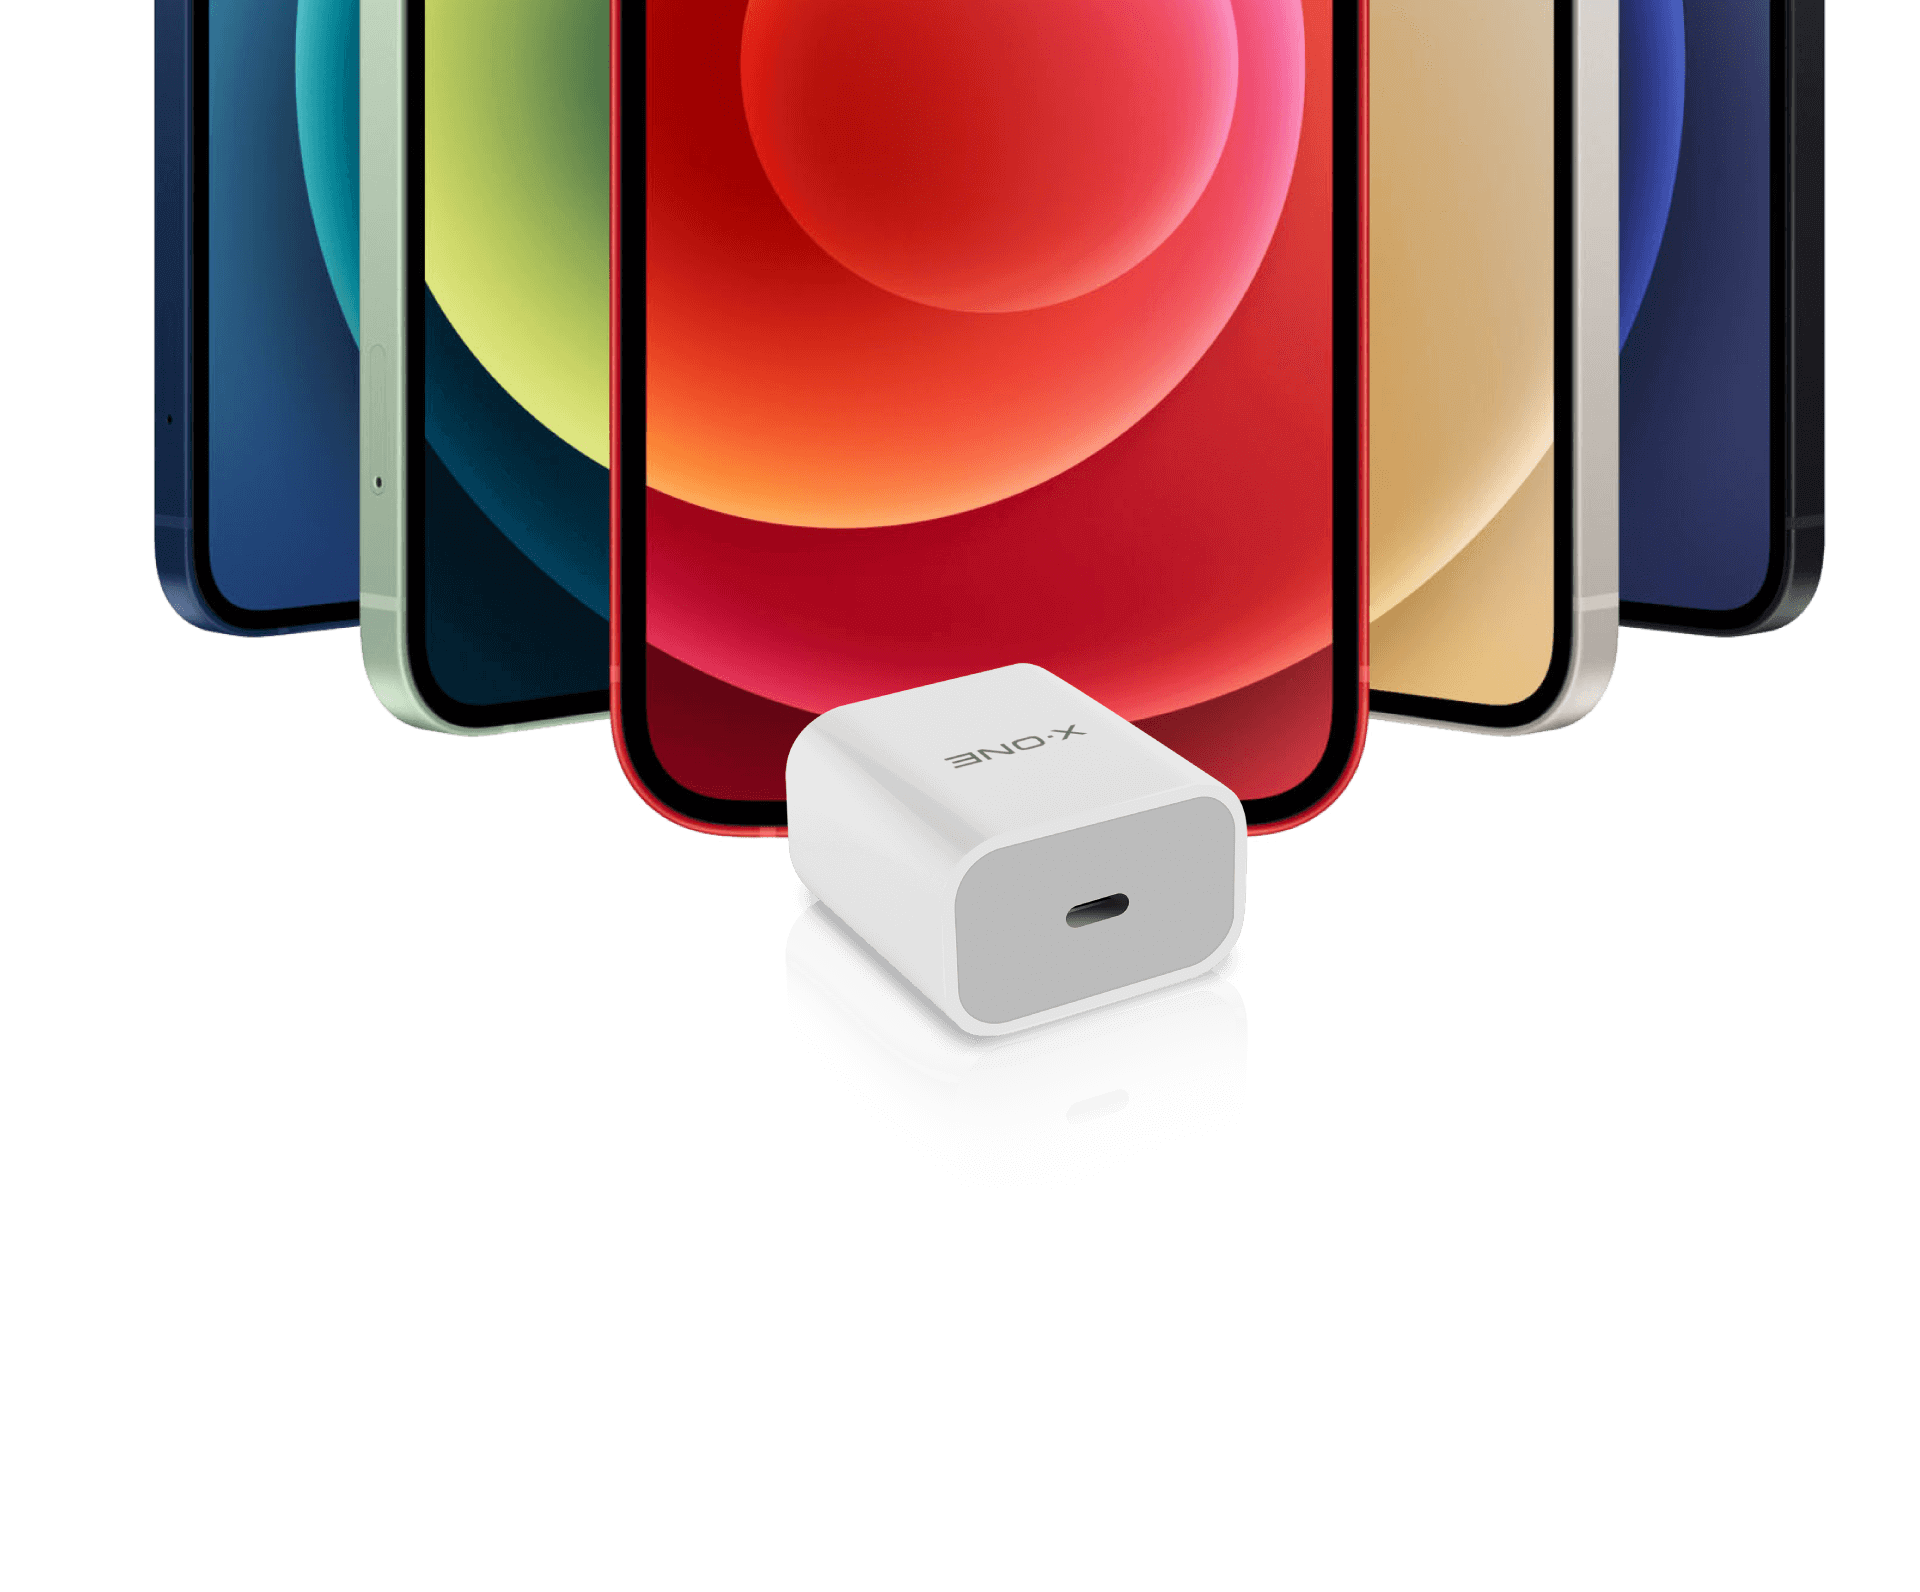 XONE Power Charger Solo - Our best charger for your new iPhone